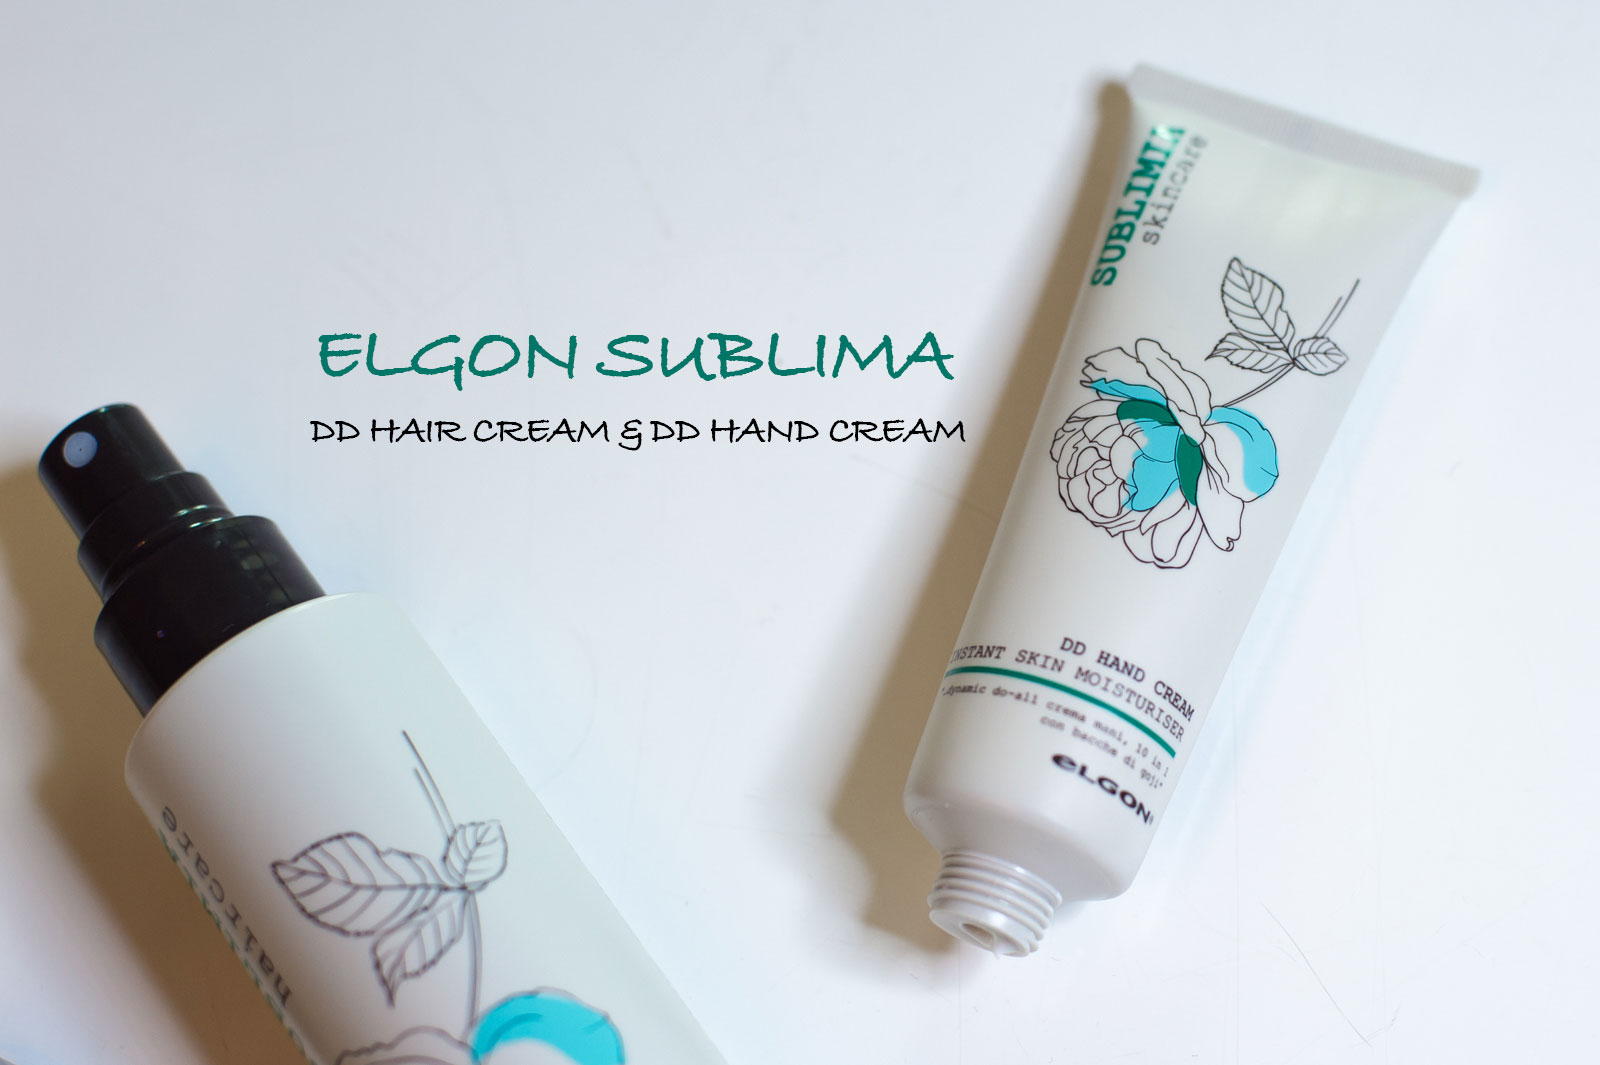 Elgon Sublimia Haircare en Skincare